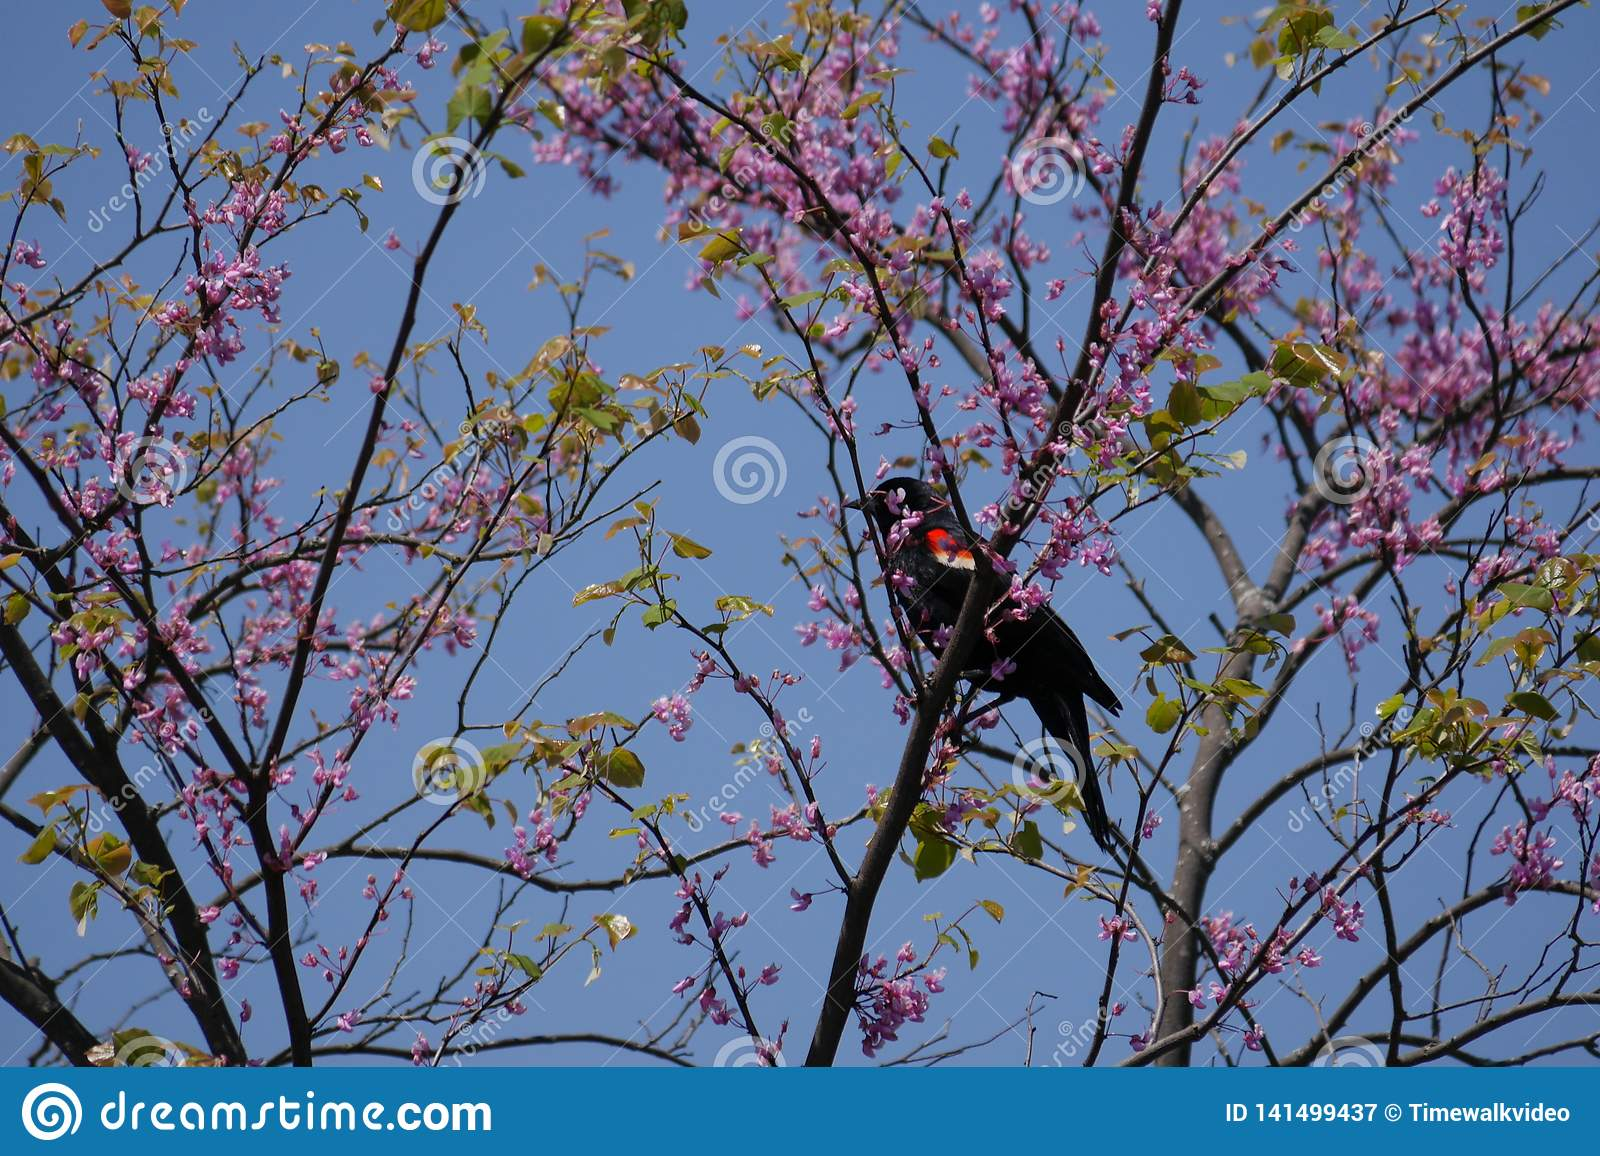 Red-Winged Blackbird in Pink Blossoms